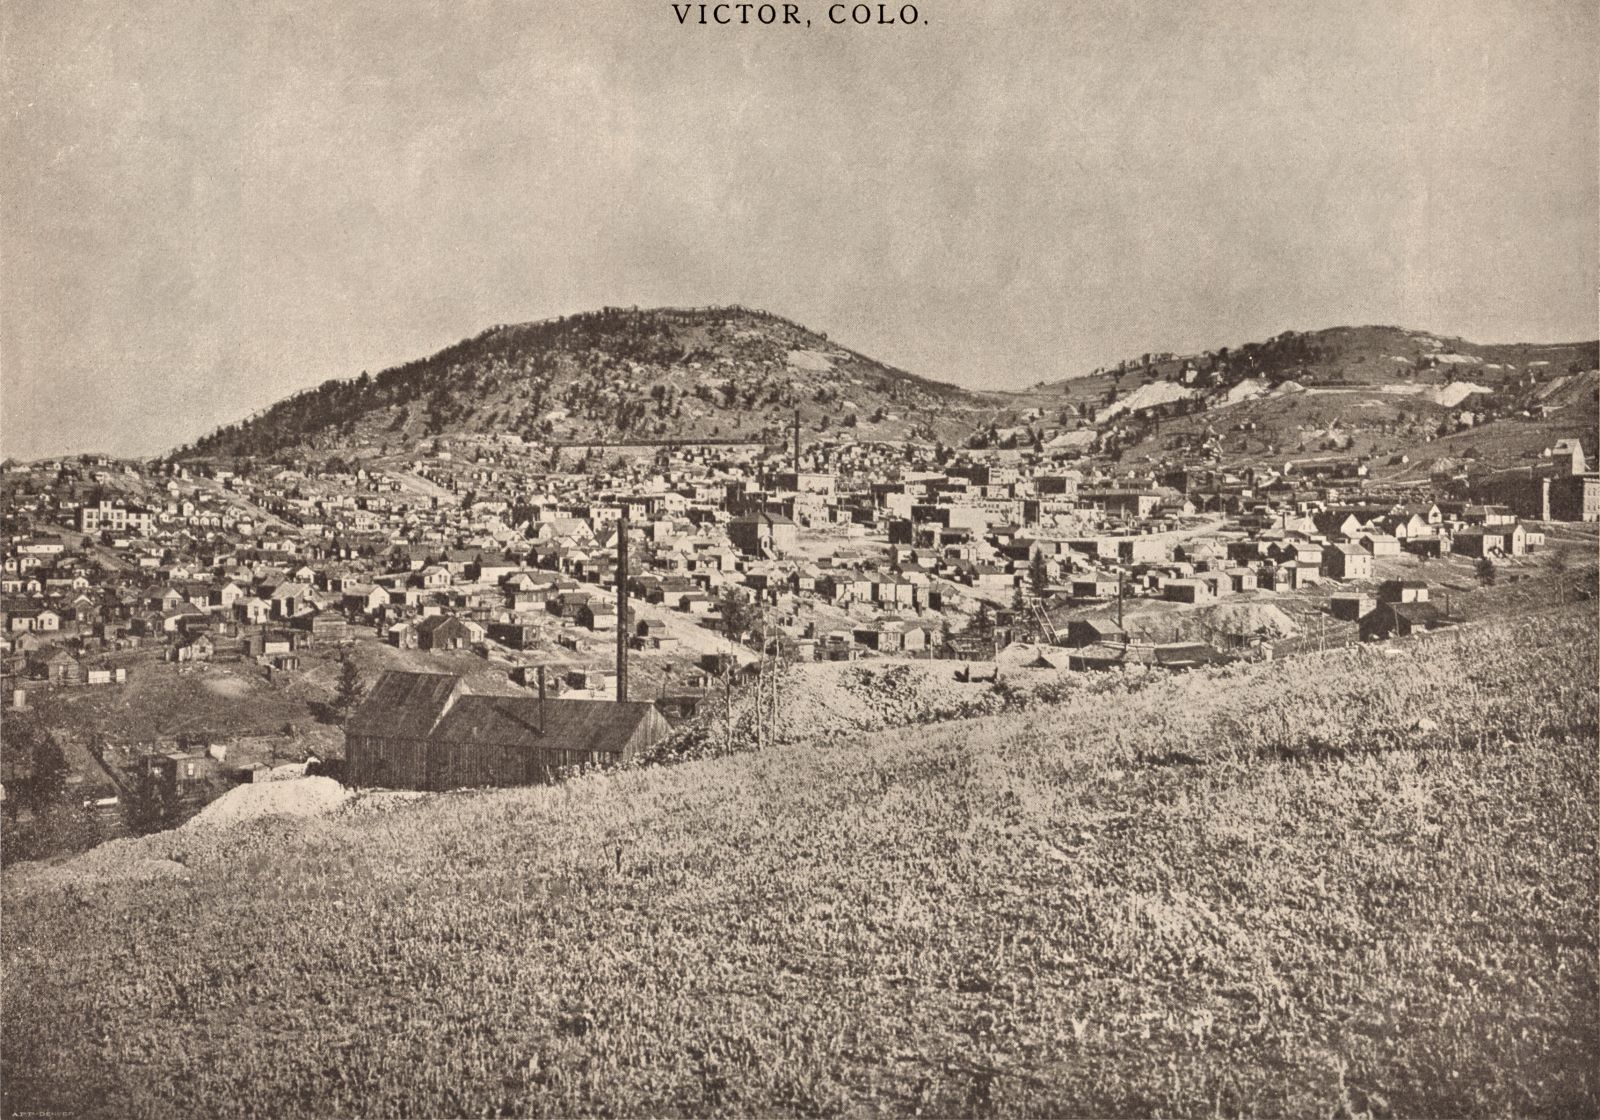 "This overview of Victor as seen from somewhere in South-East  has been credited to several photographs, Schedin & Lehman is written on an Image seen at DPL, where also Julia Skolas has her name, but as this view is from after the 1899 fire which took out much of Victor, but before the head-frame of the Gold Coin was covered sometime in 1900/1901 timeframe, I can't see how she can have actually have taken this photo, so I think she bought it and the rights to it – and possible others – from the Schedin & Lehman company after she arrived at the District. The usefulness of this image is really on the DPL view, as most of the mines are deep into the image and some of them are really not much to actually see anything other than knowing they are in this view in order to help place them in a mental map of the District/area. * In the foreground left is the mine I've seen a close-up off from the other side, where it then was marked as ""Great Central Mining & Milling Co."", and from other sources I have it linked as being named/known as the Maggie Mine. * About middle bottom/top along the right-hand side is the top part of the Shaft-house of the Strong Mine, with the Victor High-School in front of it. * About 2/5 down from top and about center left/right is the large smokestack of the Gold Coin mine, with the Head-frame at right of the smokestack – best seen on the DPL large image. This helps date the image except I don't know the date the head-frame was enclosed in the brick structure most common known as the Gold Coin mine. * Above the smokestack of the Gold Coin, high up on Squaw Mtn. is a dump area seen, there is a small Shaft-house there, again I refer to the DPL as best view, that is the Nellie V. mine. * About 1/4 in from right-hand side, and about 1/3 down from top, is the large Ajax Mine complex seen, with the big dump out over the hillside of Battle Mountain. Looking at the DPL view one can actually see they are extending the Ore-house towards right in this view. * Just right of the Ajax is the upper shaft of the Dead Pine, located along the Golden Circle, they did as the Portland Mine did, they have a tunnel over the tracks of the Golden Circle narrow gauge line, except here it is made of wood, not steel as on the Portland property. Can't say it is on the view, I know it is there, seen as a dark spot between Ajax and Dead Pine, but it is too far away to be of any use at all. * Further to the right, just left of the massive Portland dumps, where the hill curves, there lays the Granite Mine, seen with its Shaft-house and power house, smokestack and all, albeit at a to large distance to be of any good use for a model work, it helps in determining where in the area it was located. * The Dillon Mine has actually two shafts seen in this view, again it is the DPL view that is really of any use to such image research, a slight distance left of the shaft-house of the Strong mine on the right-hand side, there is a small Head-frame and small hoist house seen on the hillside with a dump – that is located on the Dillon claim. Further up the hill, more hidden away due to distance and such, is the more commonly associated boxy type of Shaft-house of the Dillon seen where it lays just below the mainline of the M.T. climbing the hills towards the Portland mine area outside the view at right. Seen best on the DPL view at a 100% look, or try the 200% and go near right-hand corner, the only shaft-house in this area with lettering on the side of the structure. * Again, the DPL is of help to locate the Ore-house of the Mary Cashen Mine, as it is poking up among the roofs of Victor structures, about halfway between the Strong and the Gold Coin mines. * Also, on the DPL Image the Fortuna Mine is seen quite well in the 100% view, just where the word 'Skolas' is written about 2/5 up from bottom and about 1/3 in from right-hand side. Showing a small Head-Frame west of the Hoist & Power House, with what might have been the loo west of the head-frame or possible a shed for dynamite?"